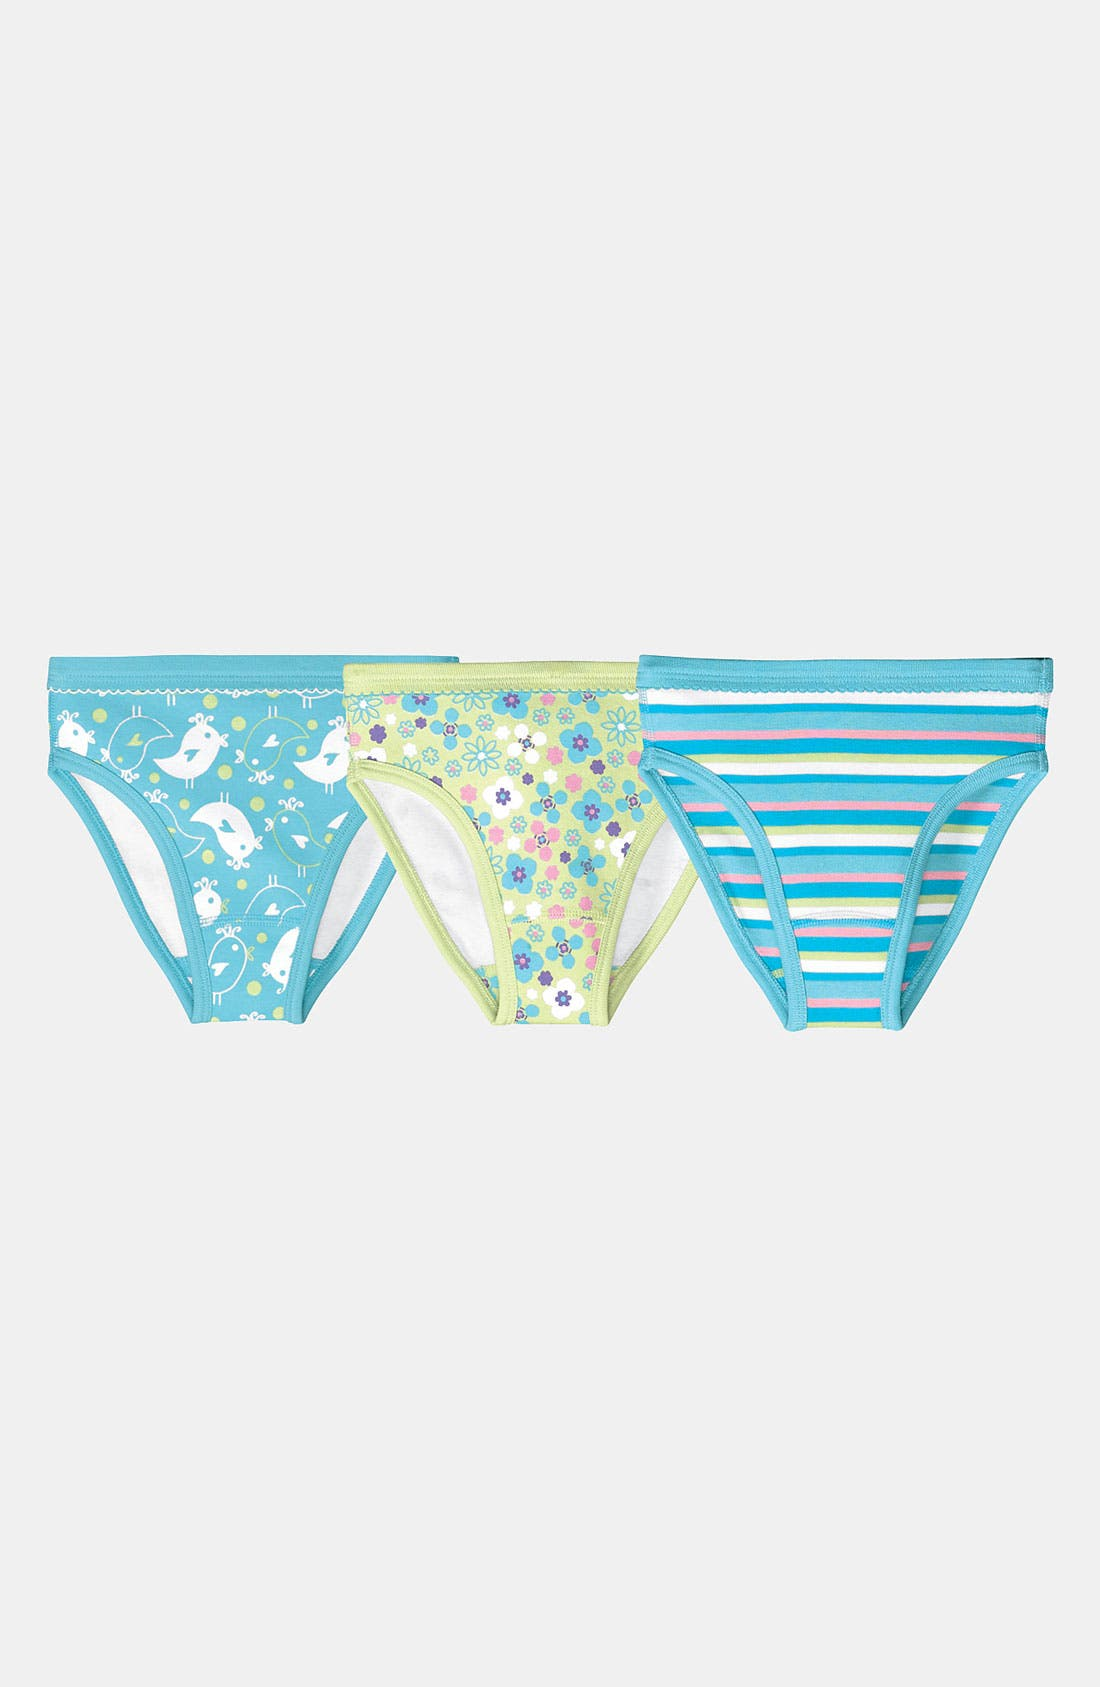 Alternate Image 1 Selected - Hanna Andersson Organic Cotton Hipster Underwear (3-Pack) (Little Girls & Big Girls)